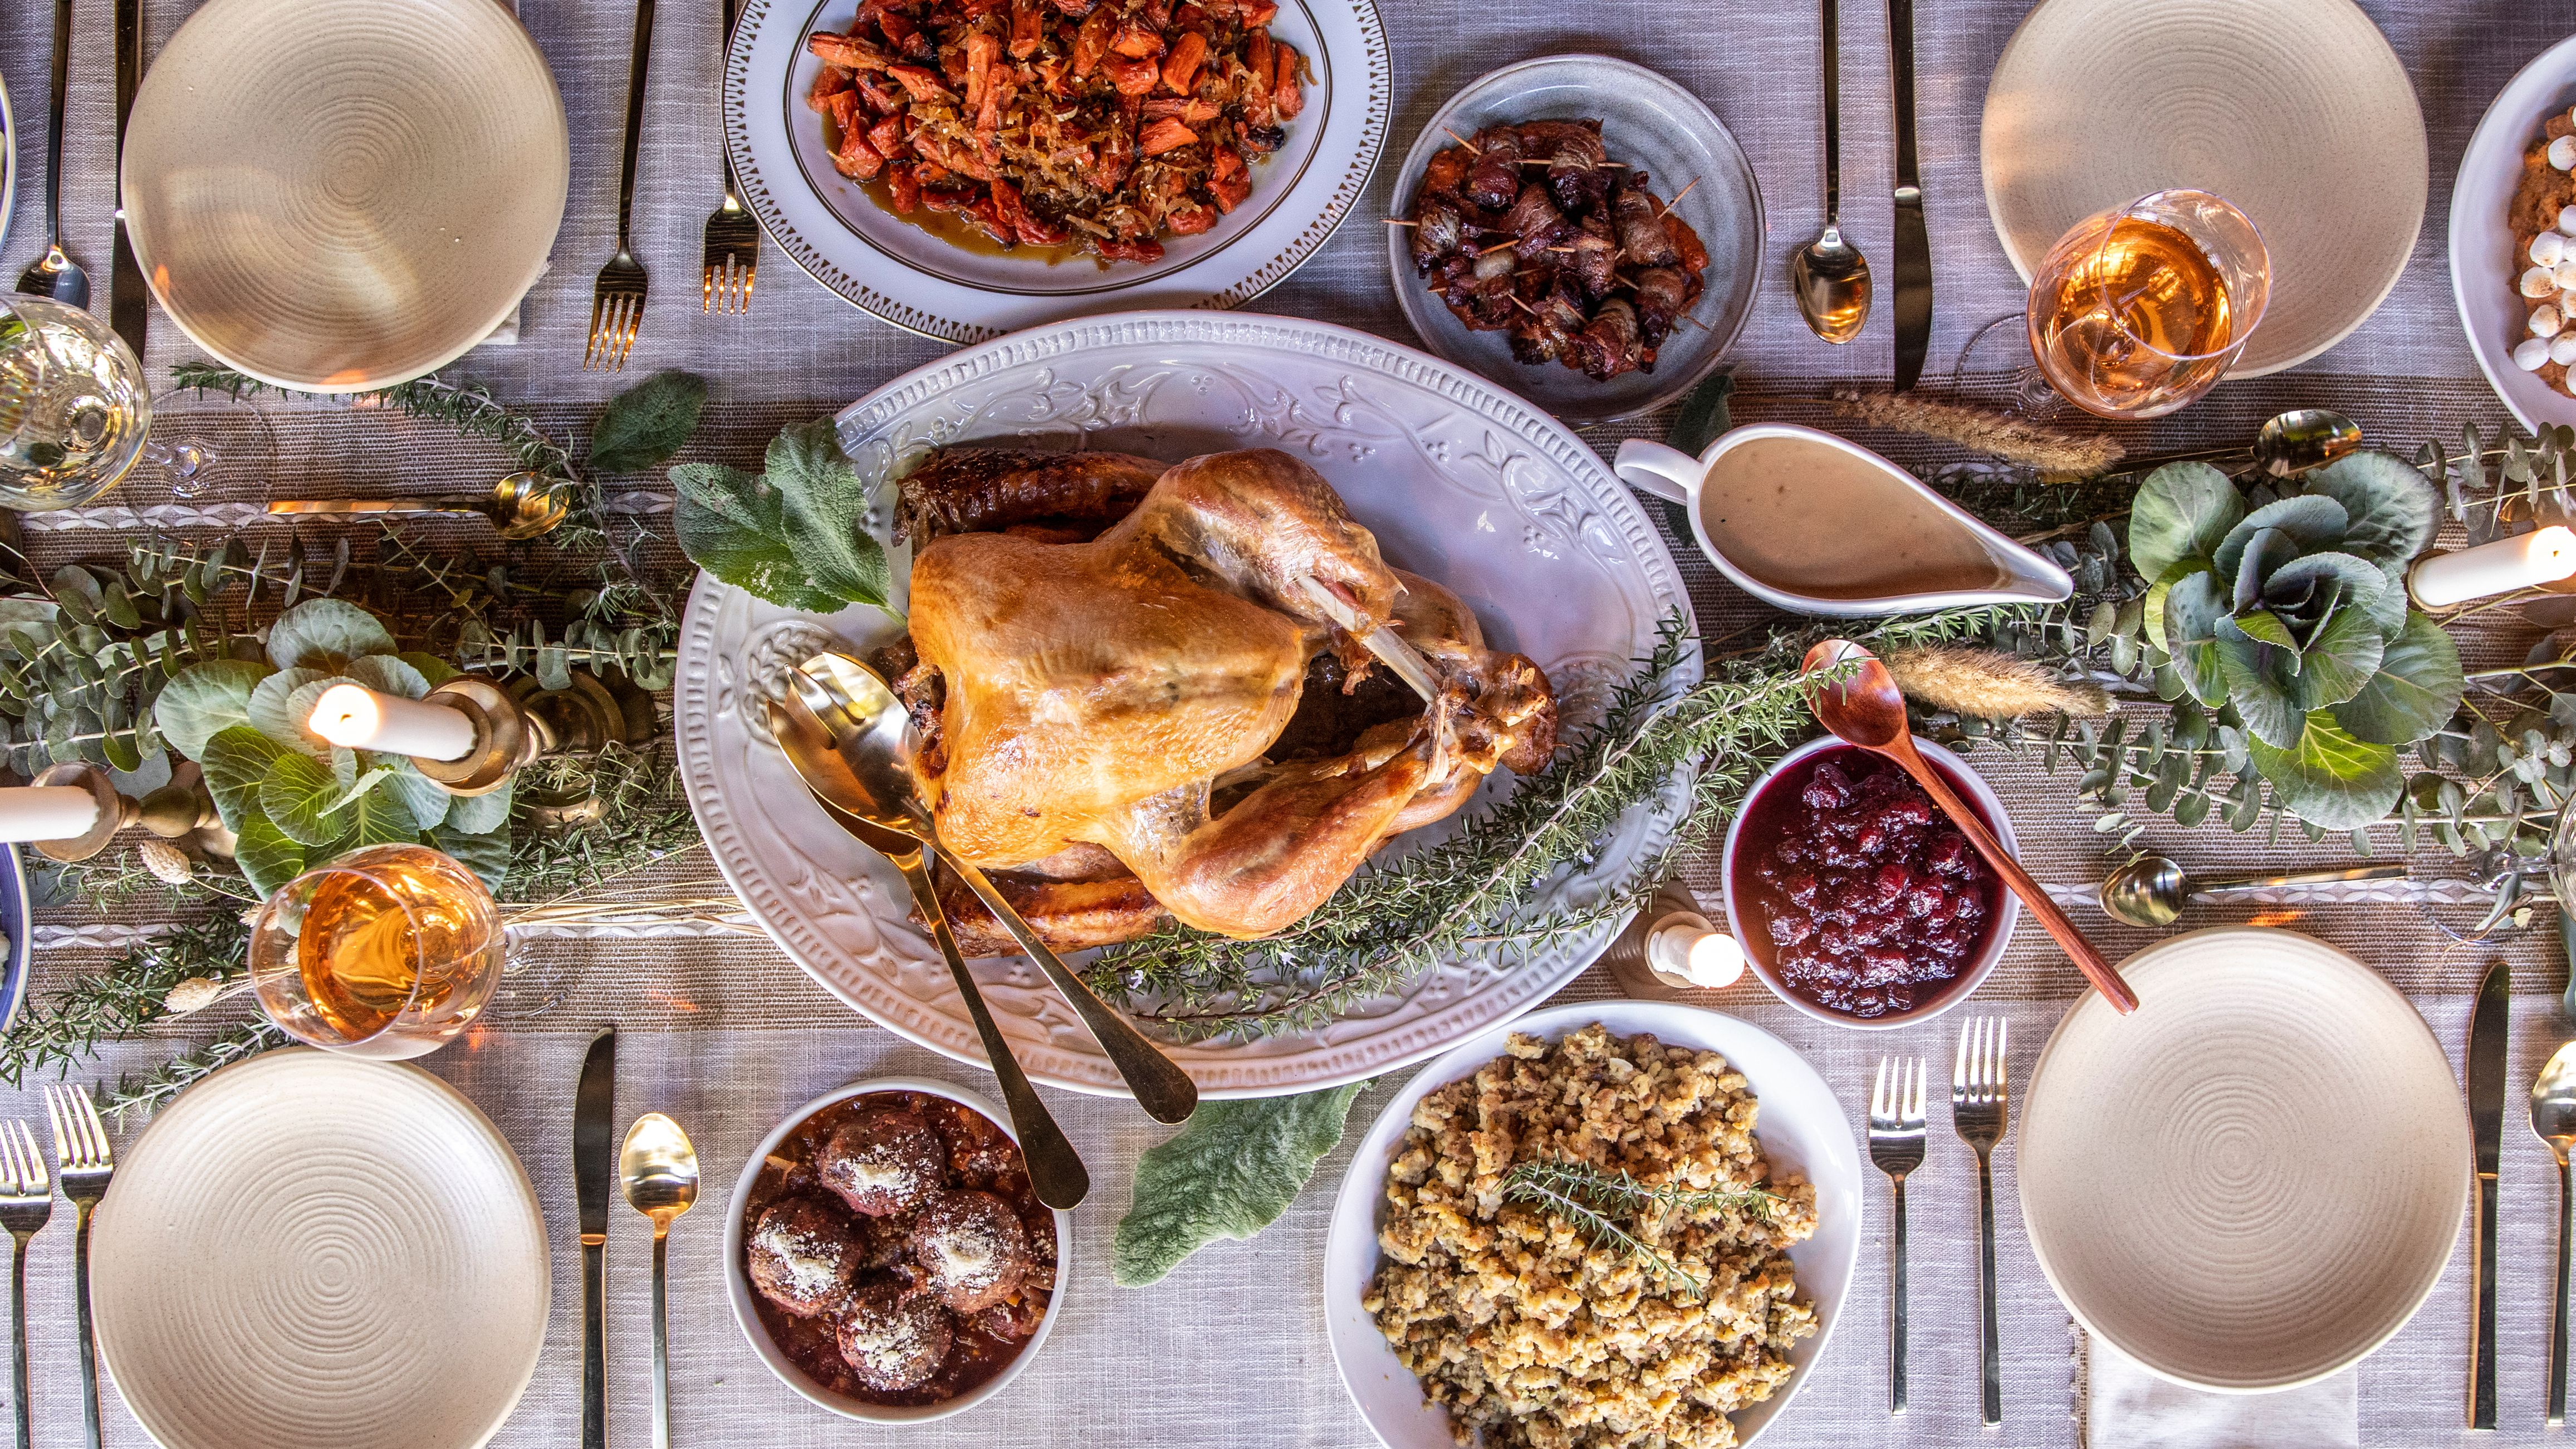 An overhead shot of a turkey dinner feast with all the Thanksgiving side dishes and trimmings